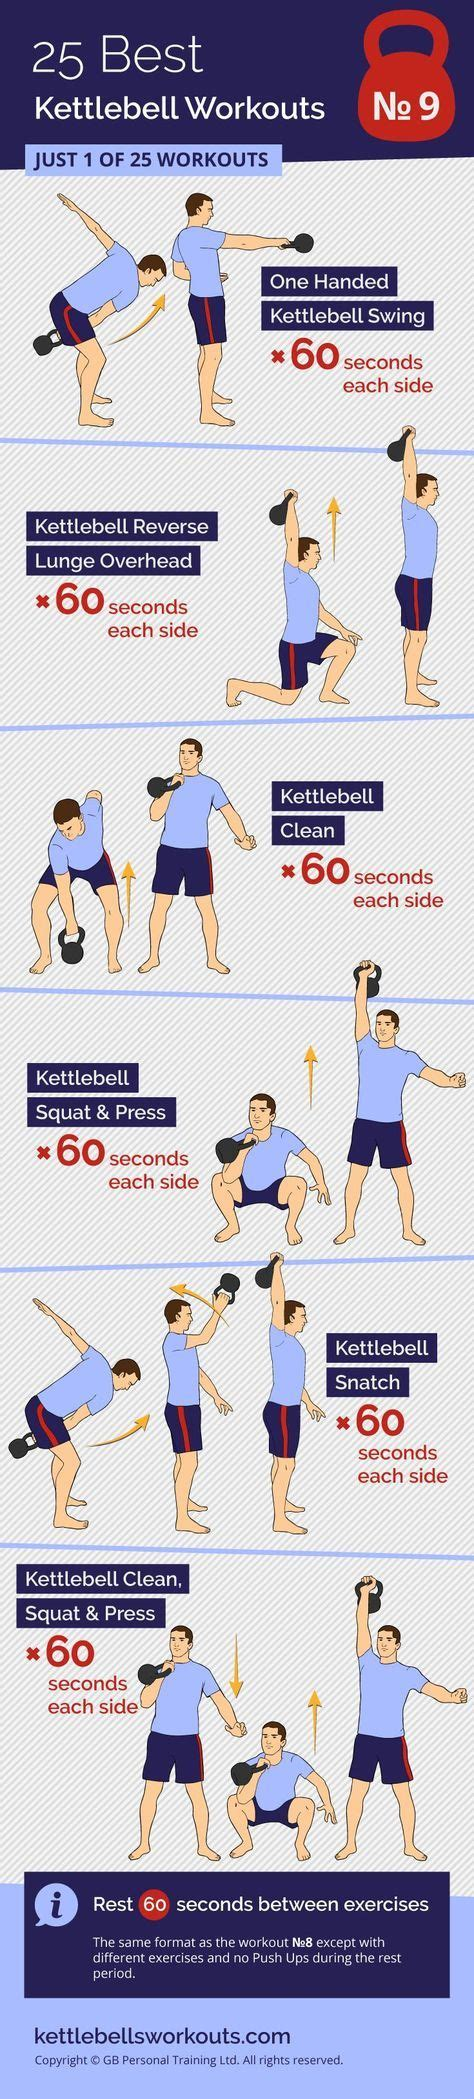 workout kettlebell routines snatch kettlebellsworkouts